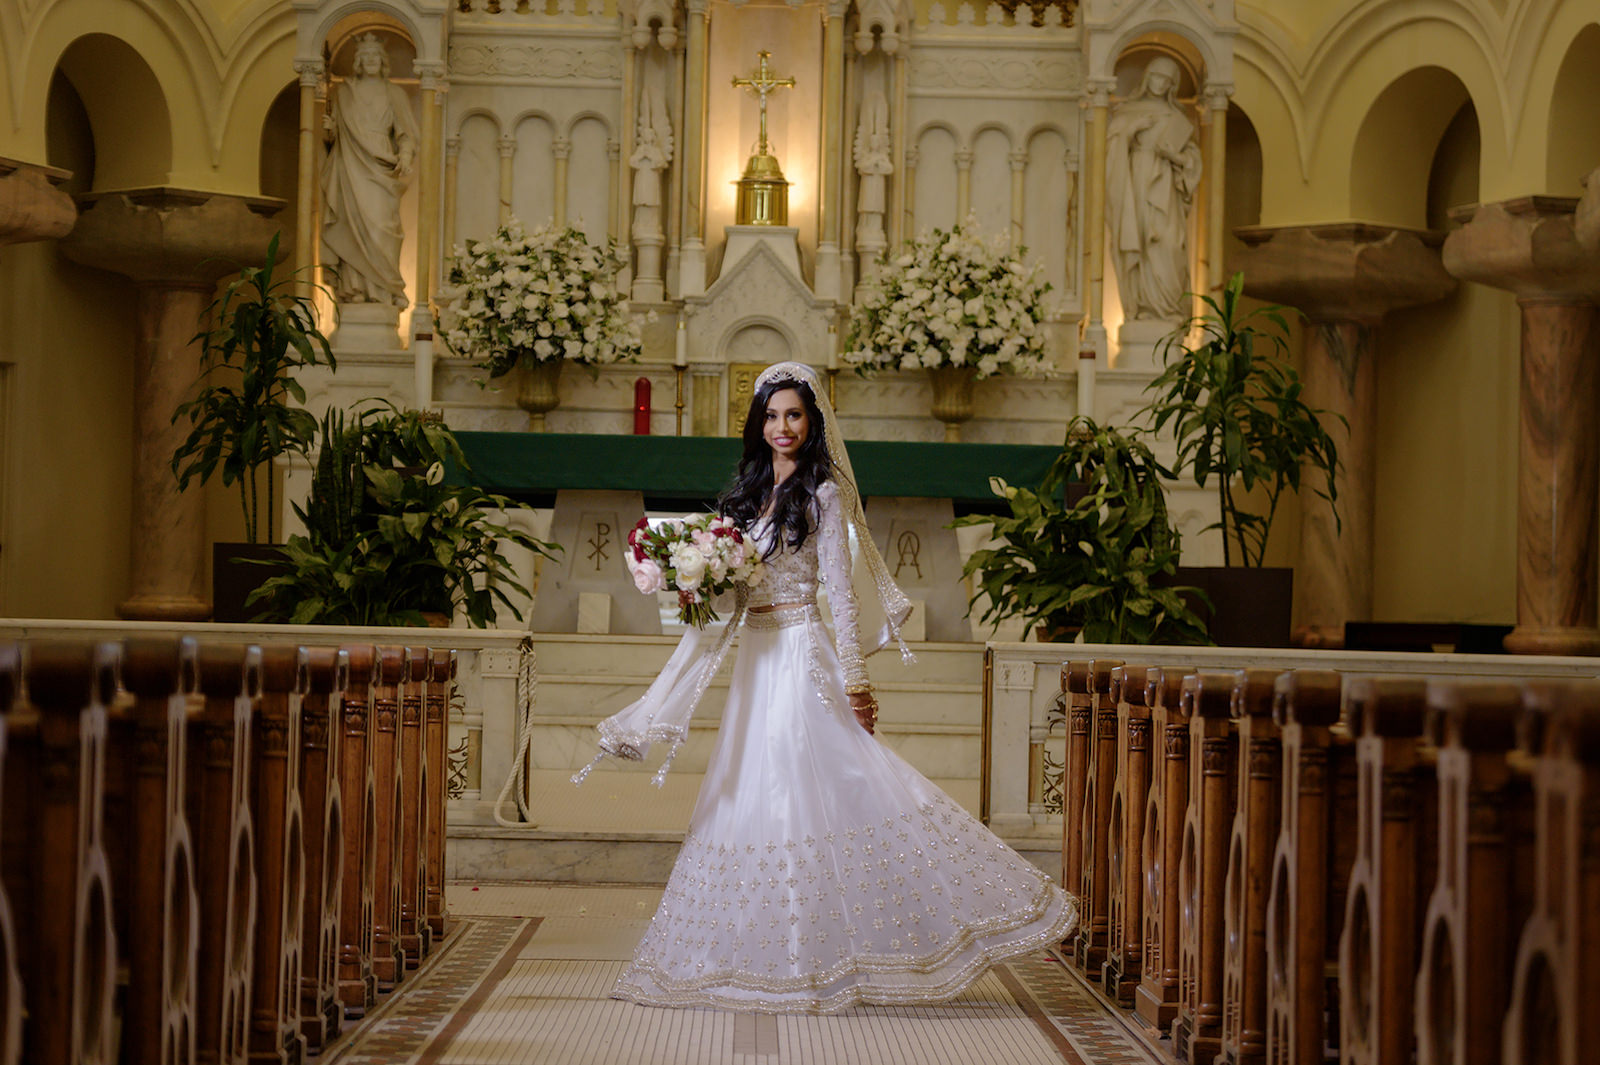 Fusion Indian Wedding Gown Bridal Church Cathedral Portrait | Indian Catholic Wedding | Florida Multicultural Wedding Ceremony | Catholic Wedding Ceremony at Sacred Heart Catholic Church | Wedding Hair and Makeup Artist Michele Renee the Studio